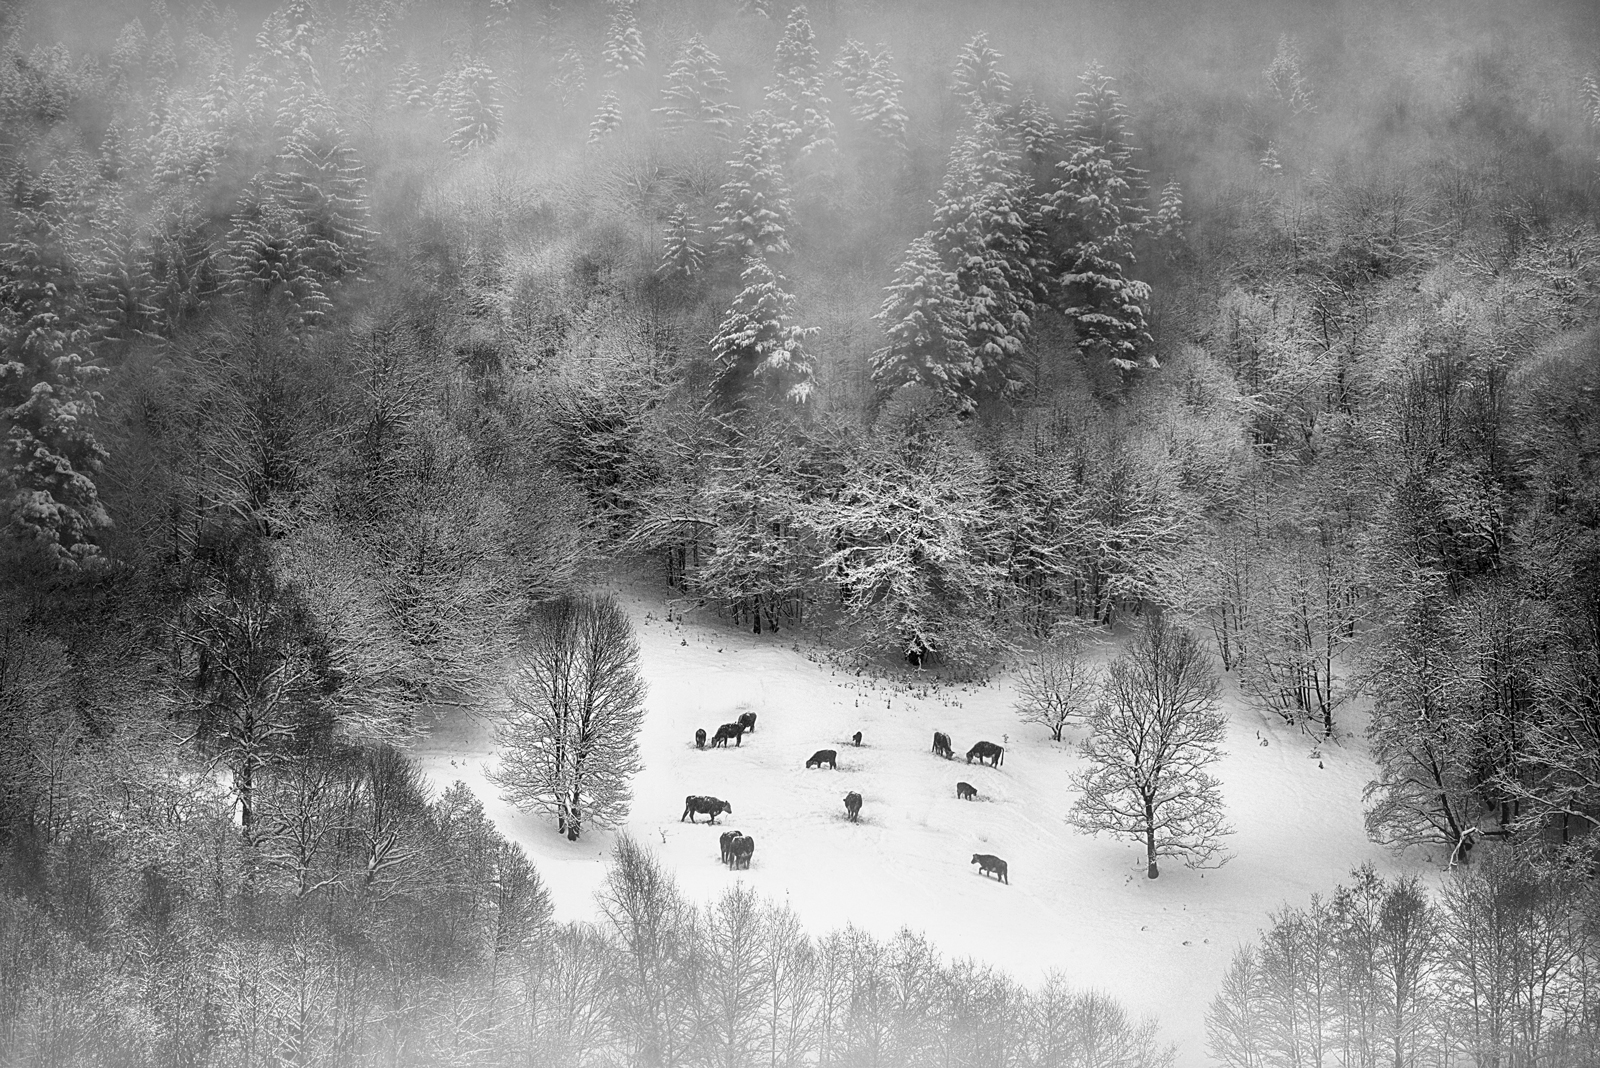 Photo in Nature | Author Todor Tanev - Todor_Tanev | PHOTO FORUM